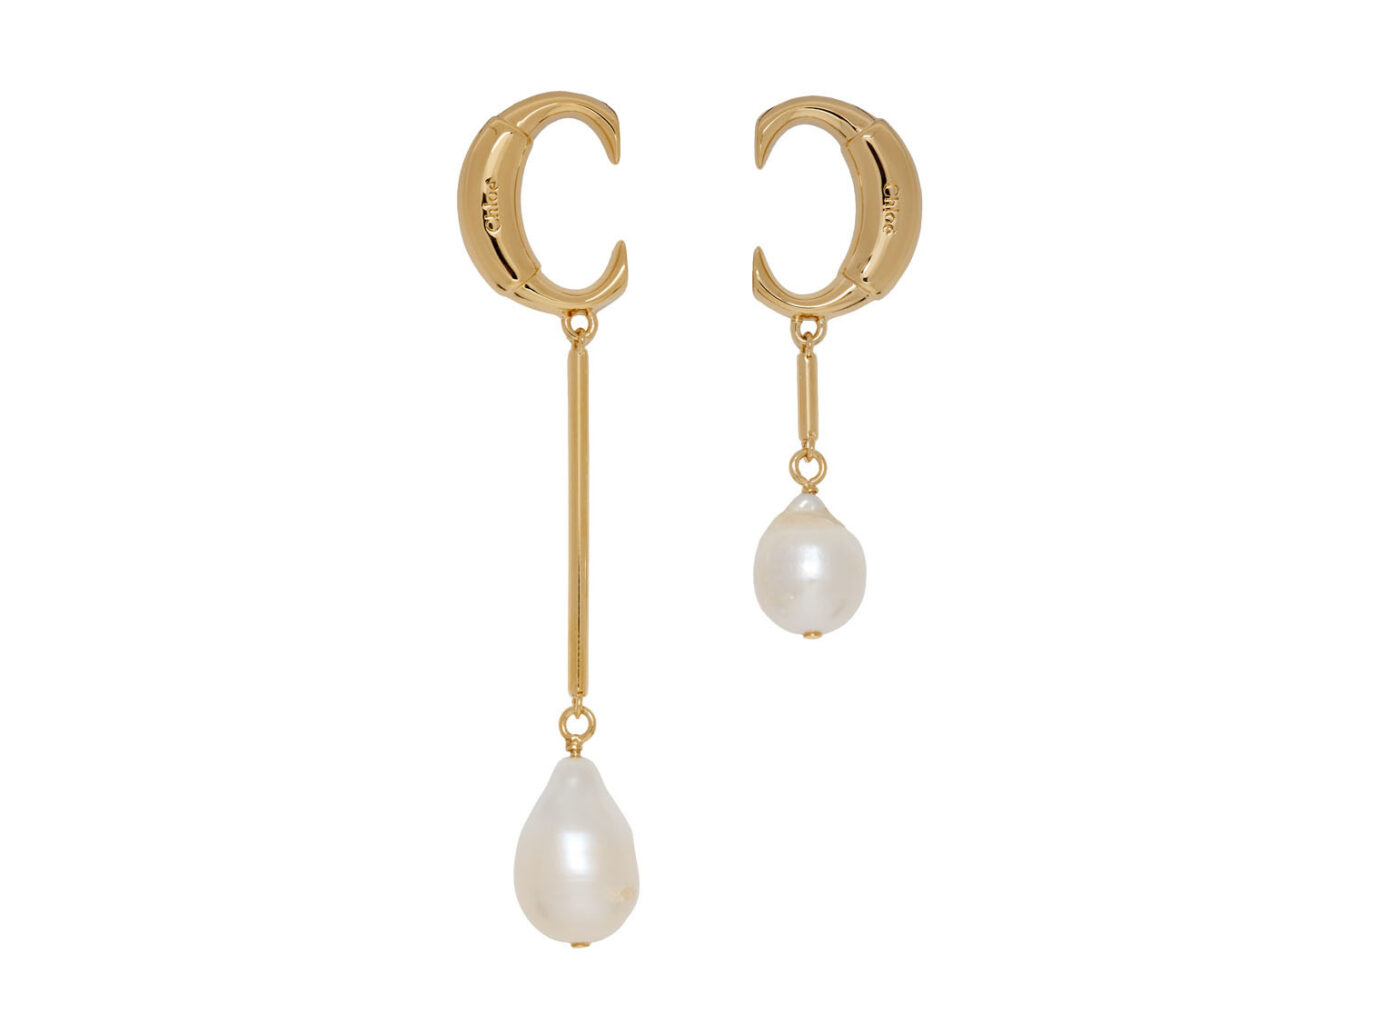 Chloé Gold 'Chloé C' Pearl Earrings